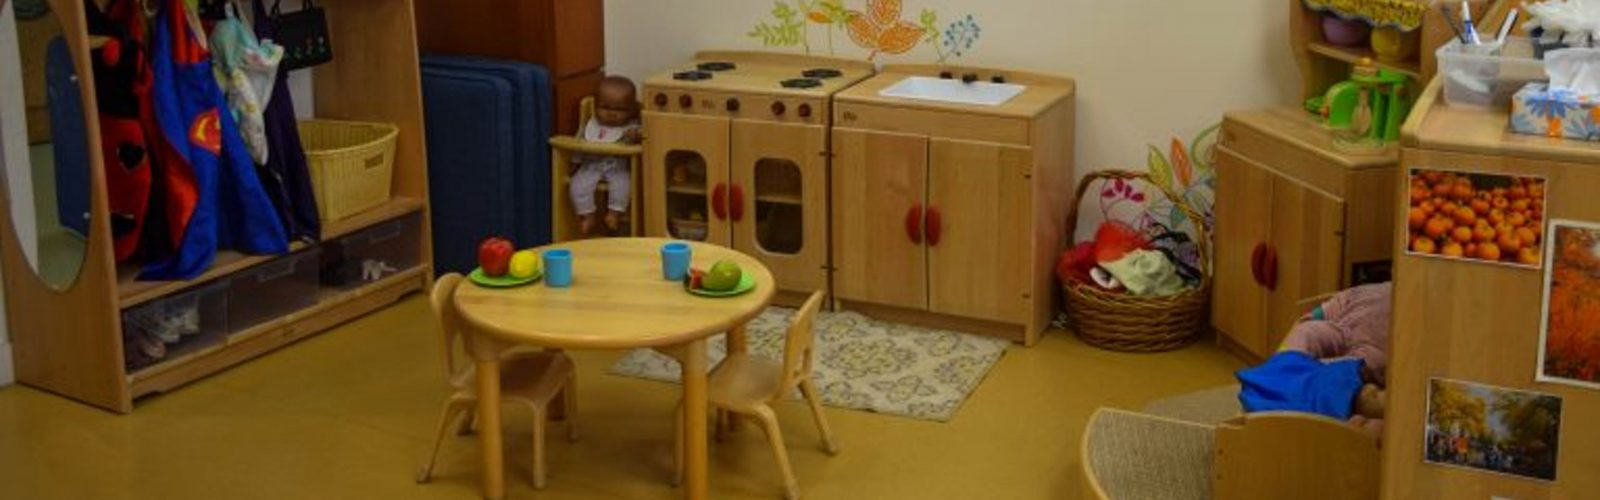 play area of the child development lab